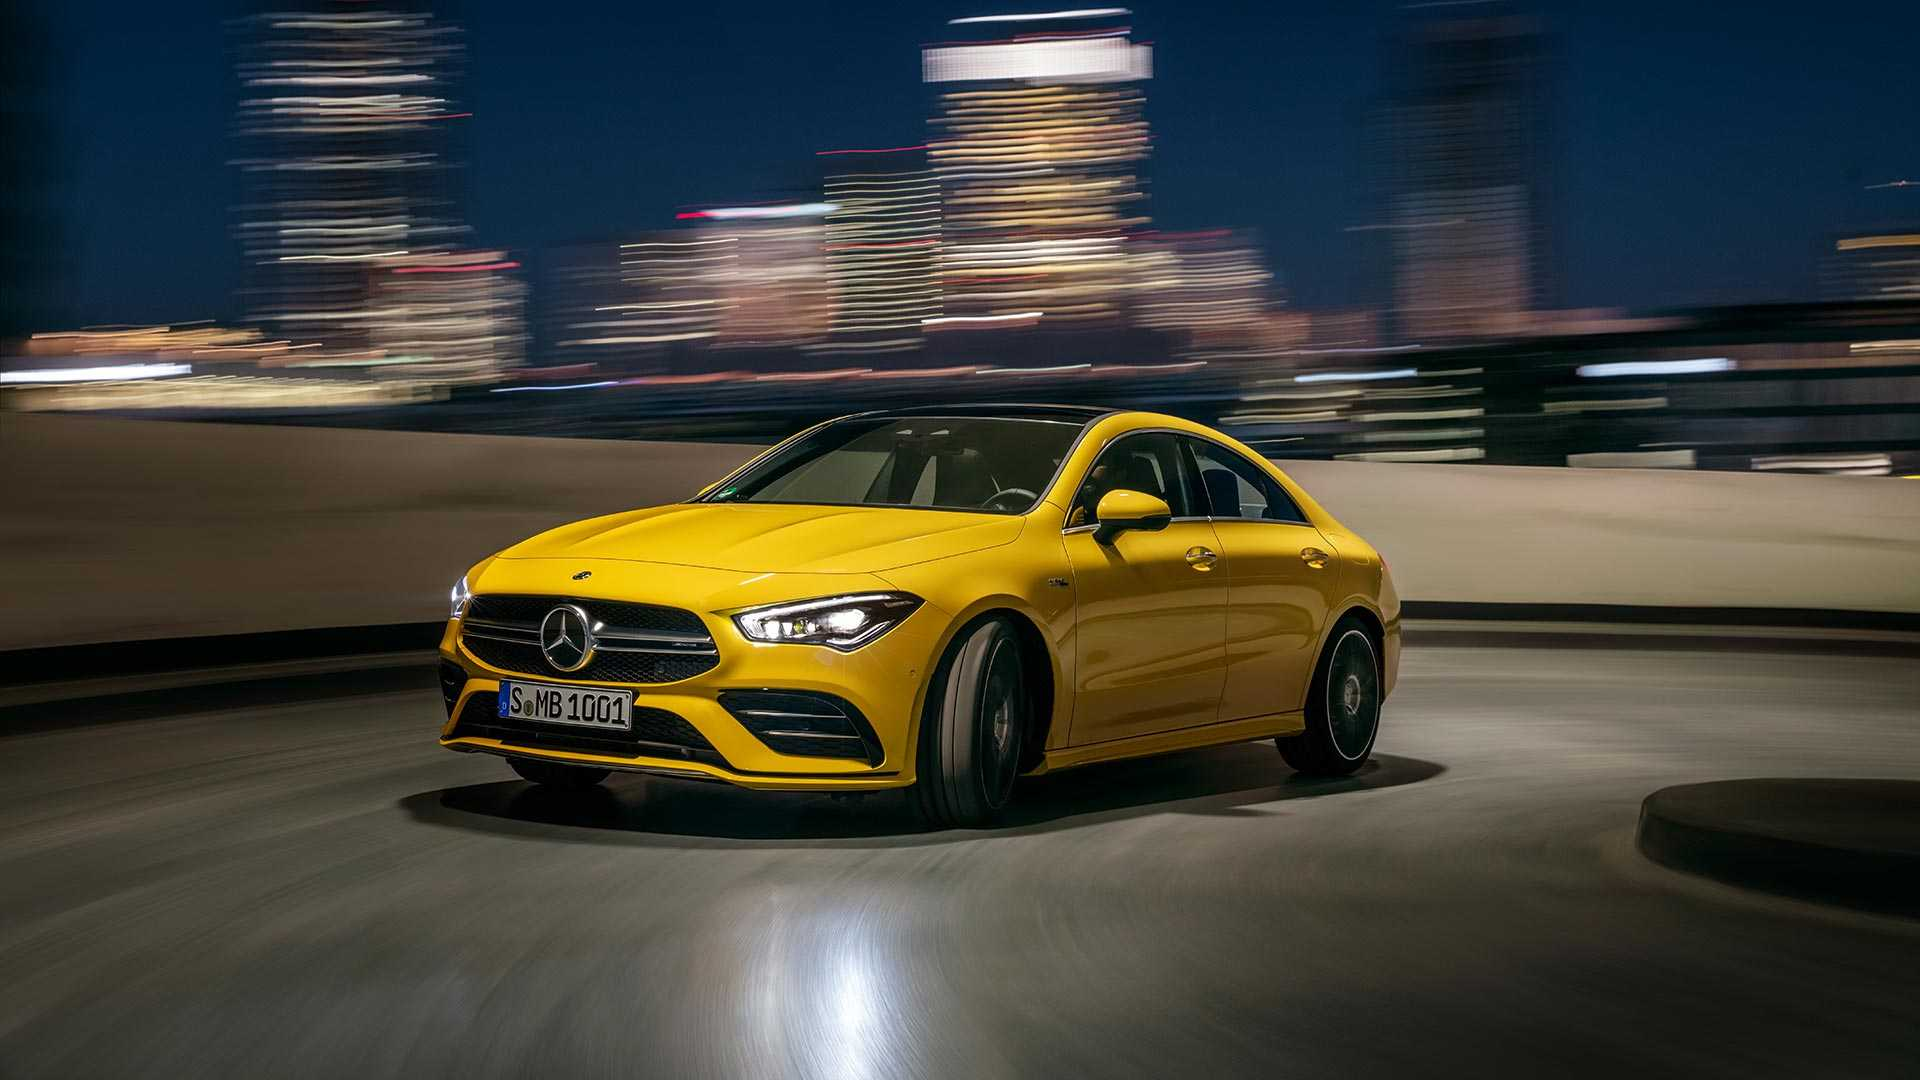 2020 Mercedes-AMG CLA 35 4MATIC (Color: Sun Yellow) Front Three-Quarter Wallpapers (6)